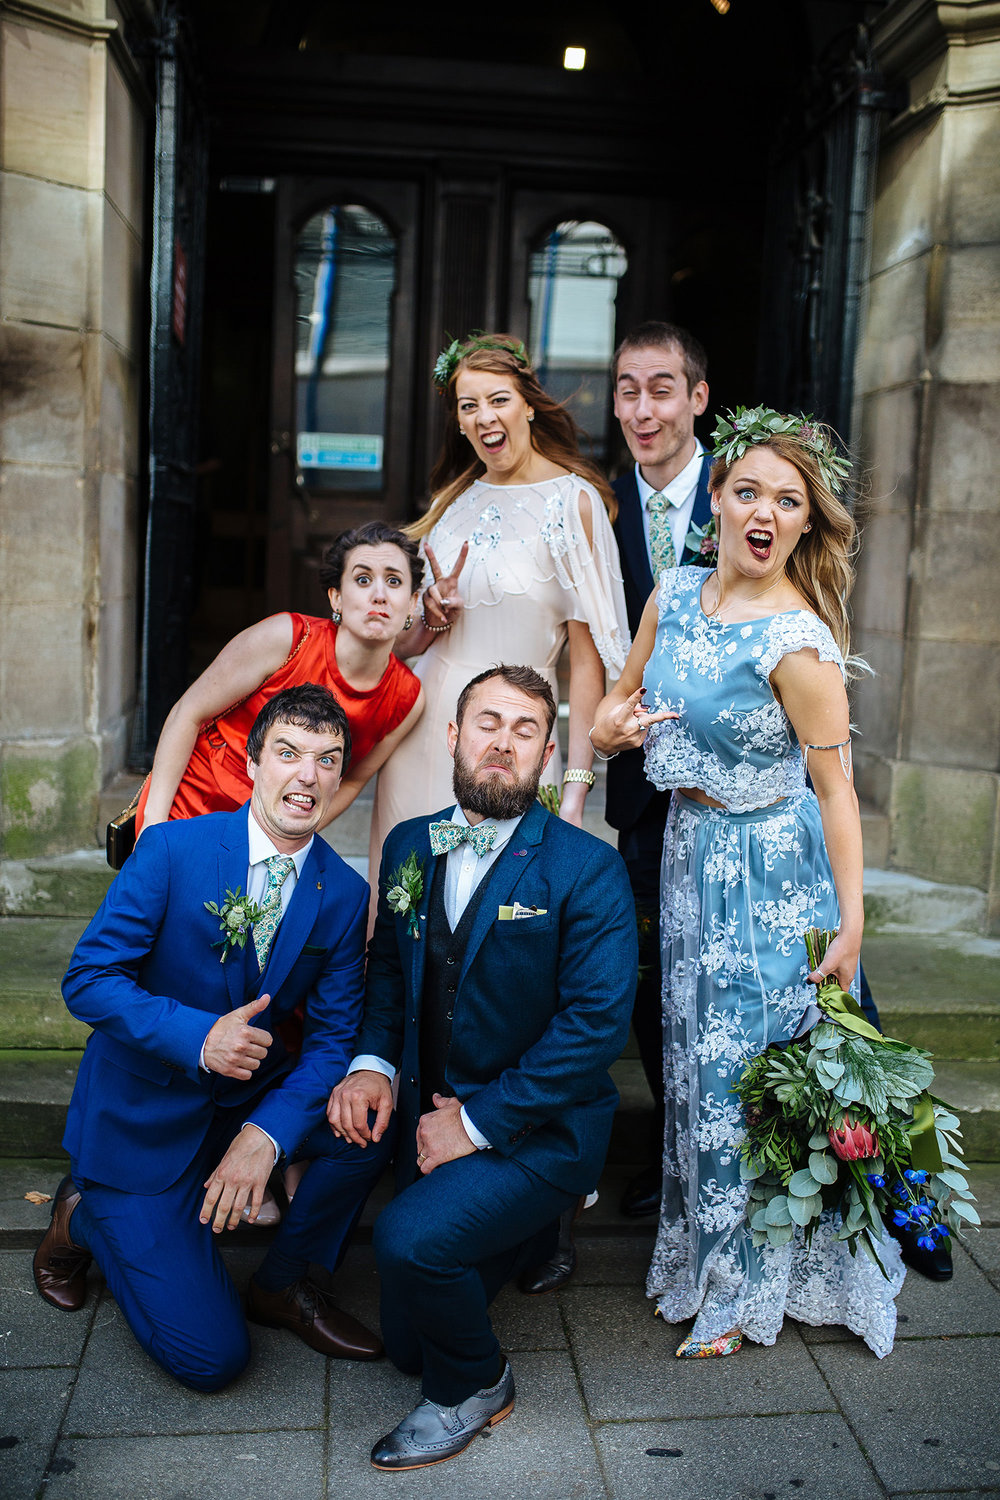 LAING ART GALLERY NEWCASTLE WEDDING PHOTOGRAPHY 119.JPG